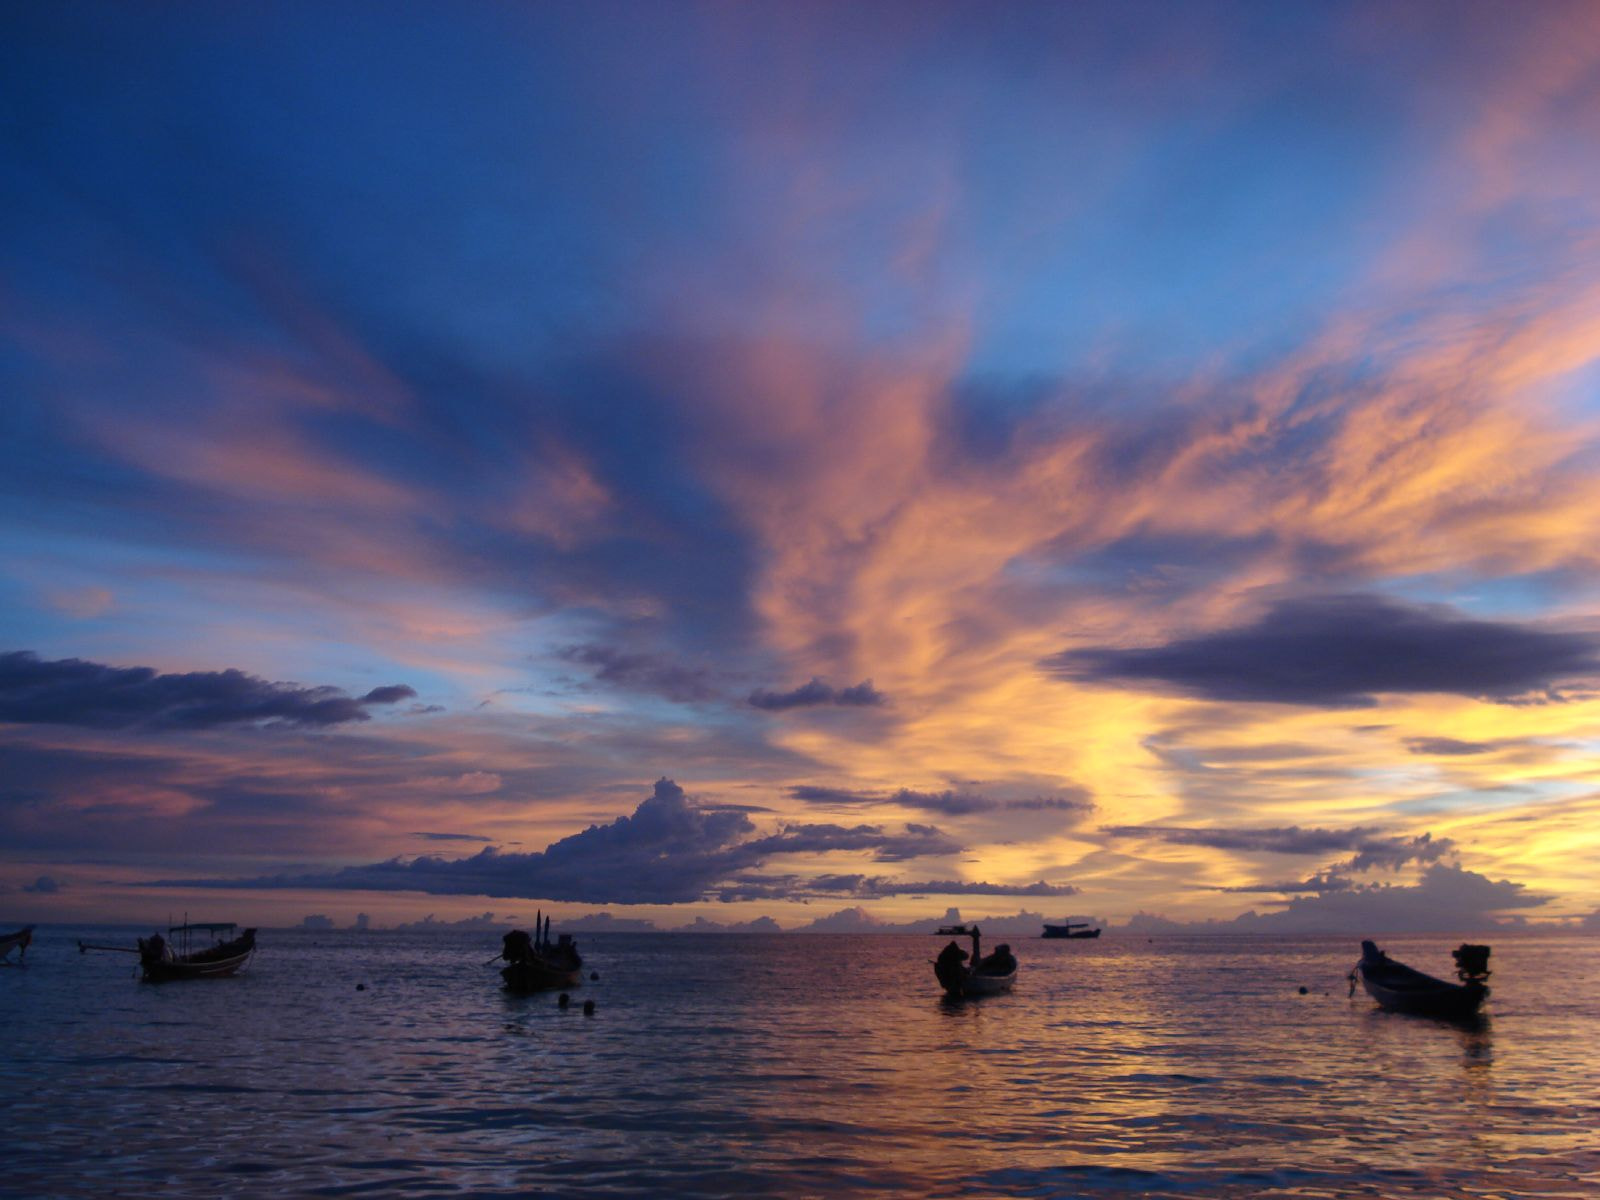 Photograph Sunsets at Koh Tao by Andrew Sutters on 500px